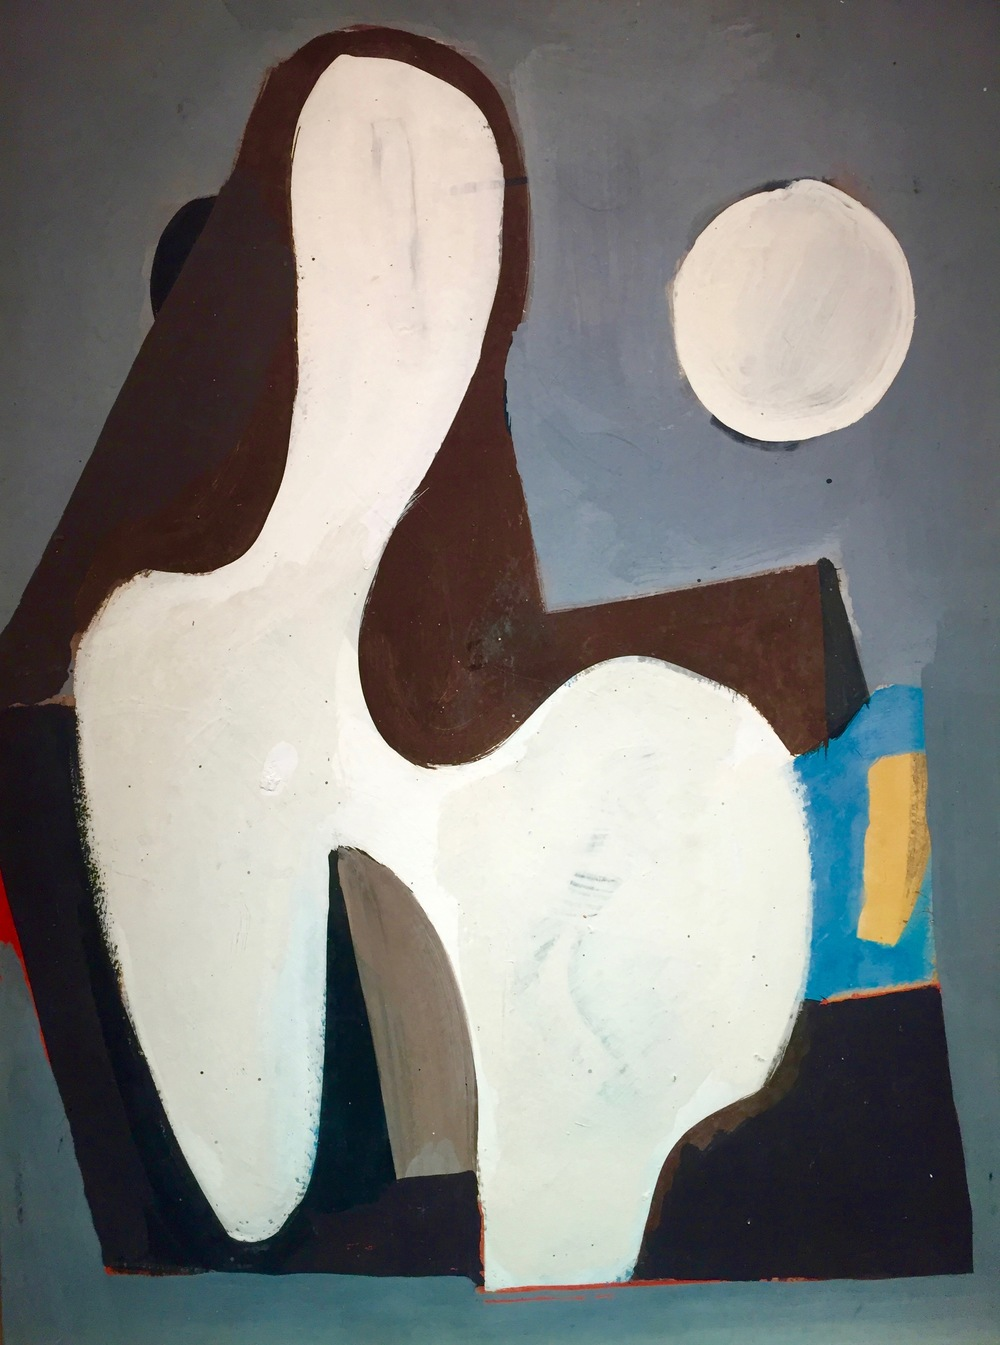 Geometric figure,1938    Medium: Paintings, Oil on board Size: 23 x 18 in. (58.4 x 45.7 cm.)  Markings: Signed and dated in the back